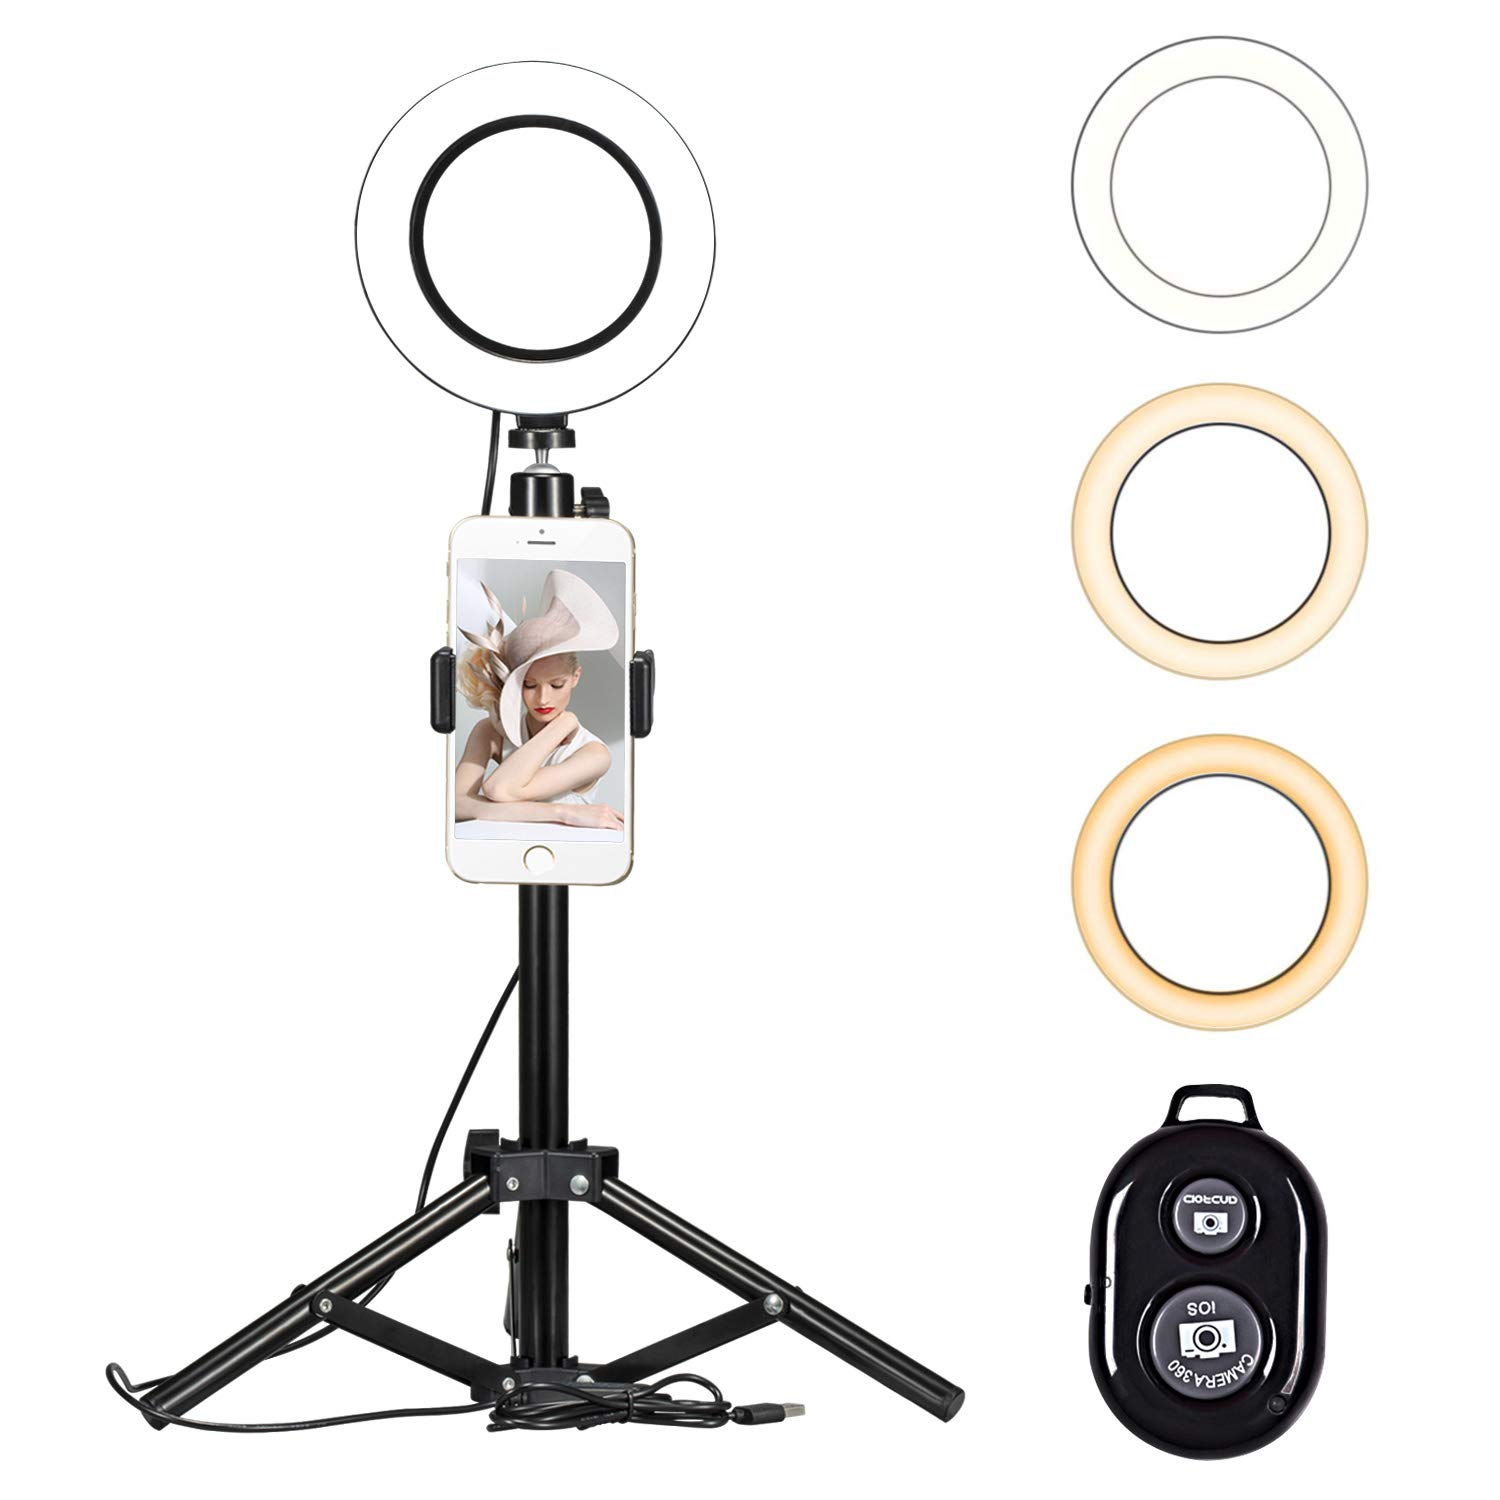 6'' Ring Light Kit, Light Stand Ring Light Cellphone Holder with Adjustable Tripod Stand for Live Stream/Makeup/Video/Photography (3 Light Modes,10-Level Brightness & Remote Control) for iPhone Android by Sigoobal